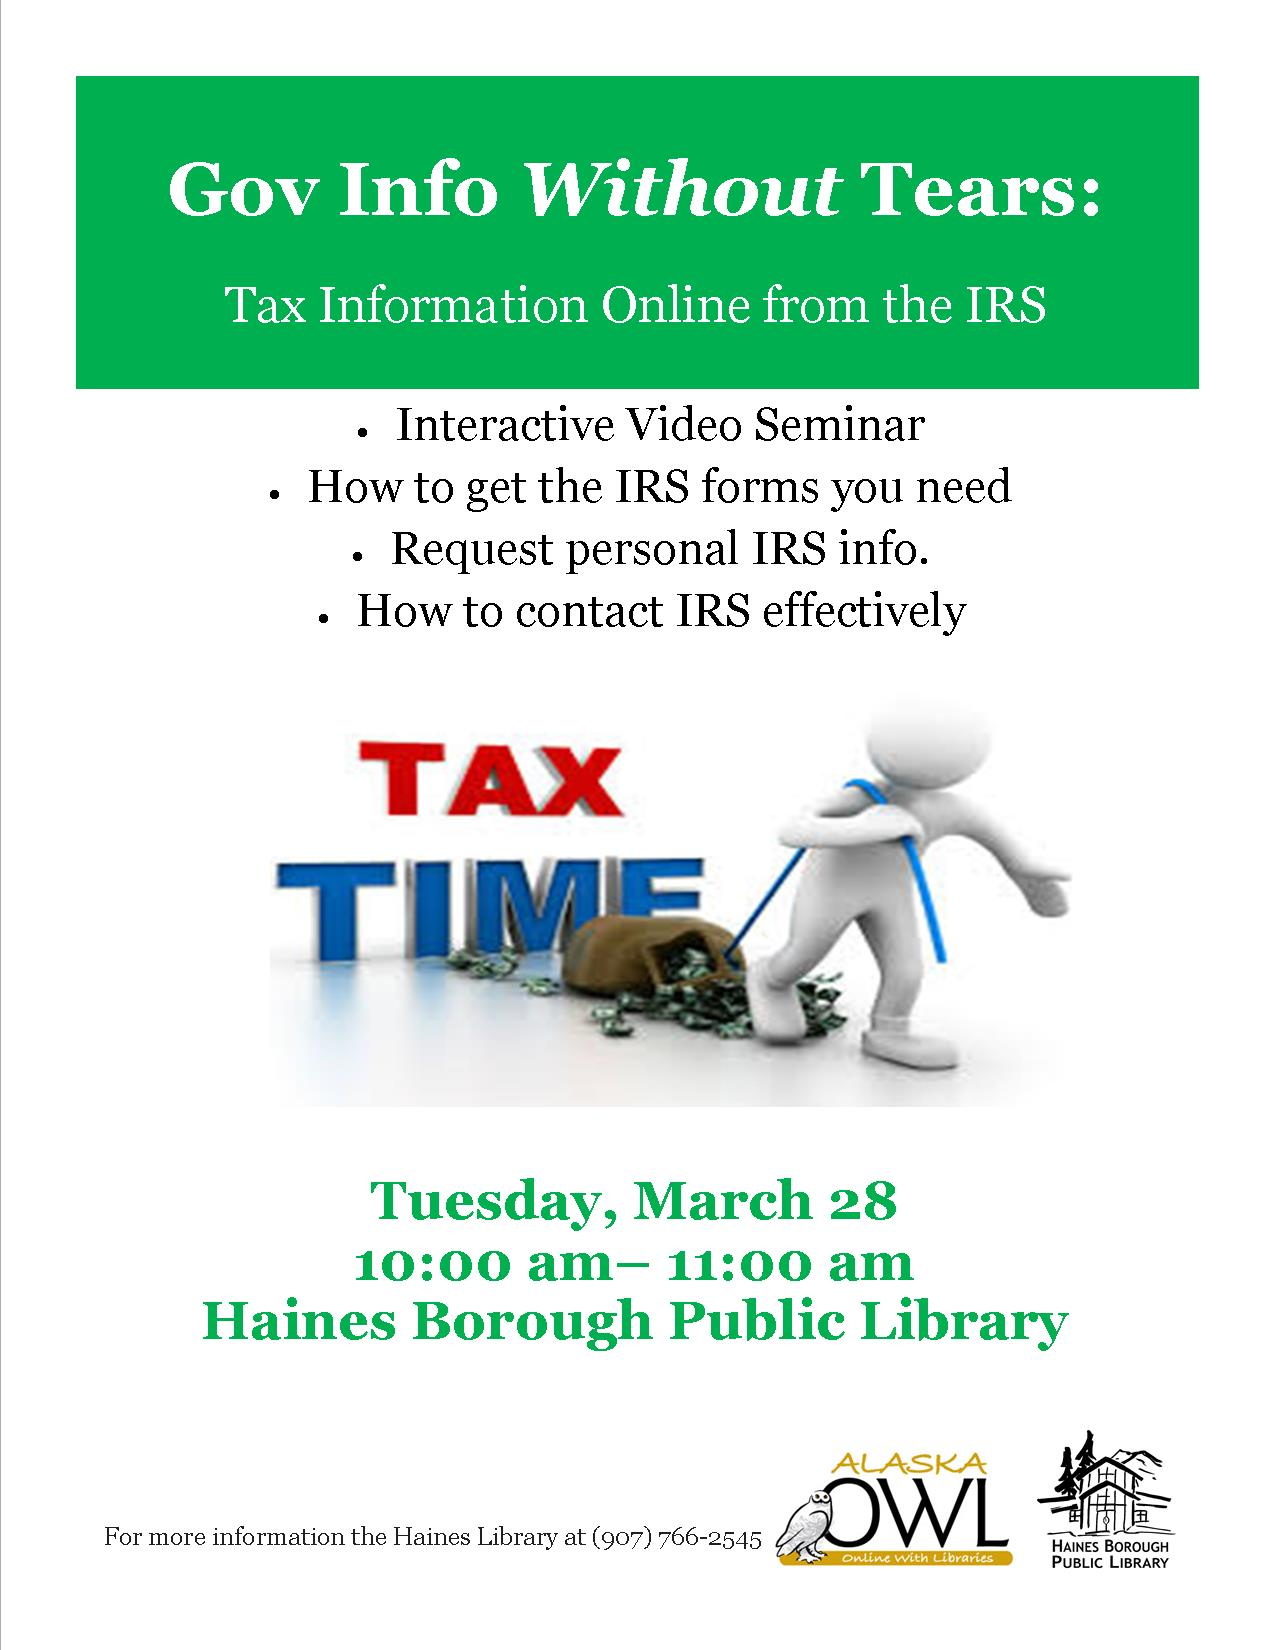 Gov info without tears tax information online from the irs haines gov info without tears tax information online from the irs falaconquin